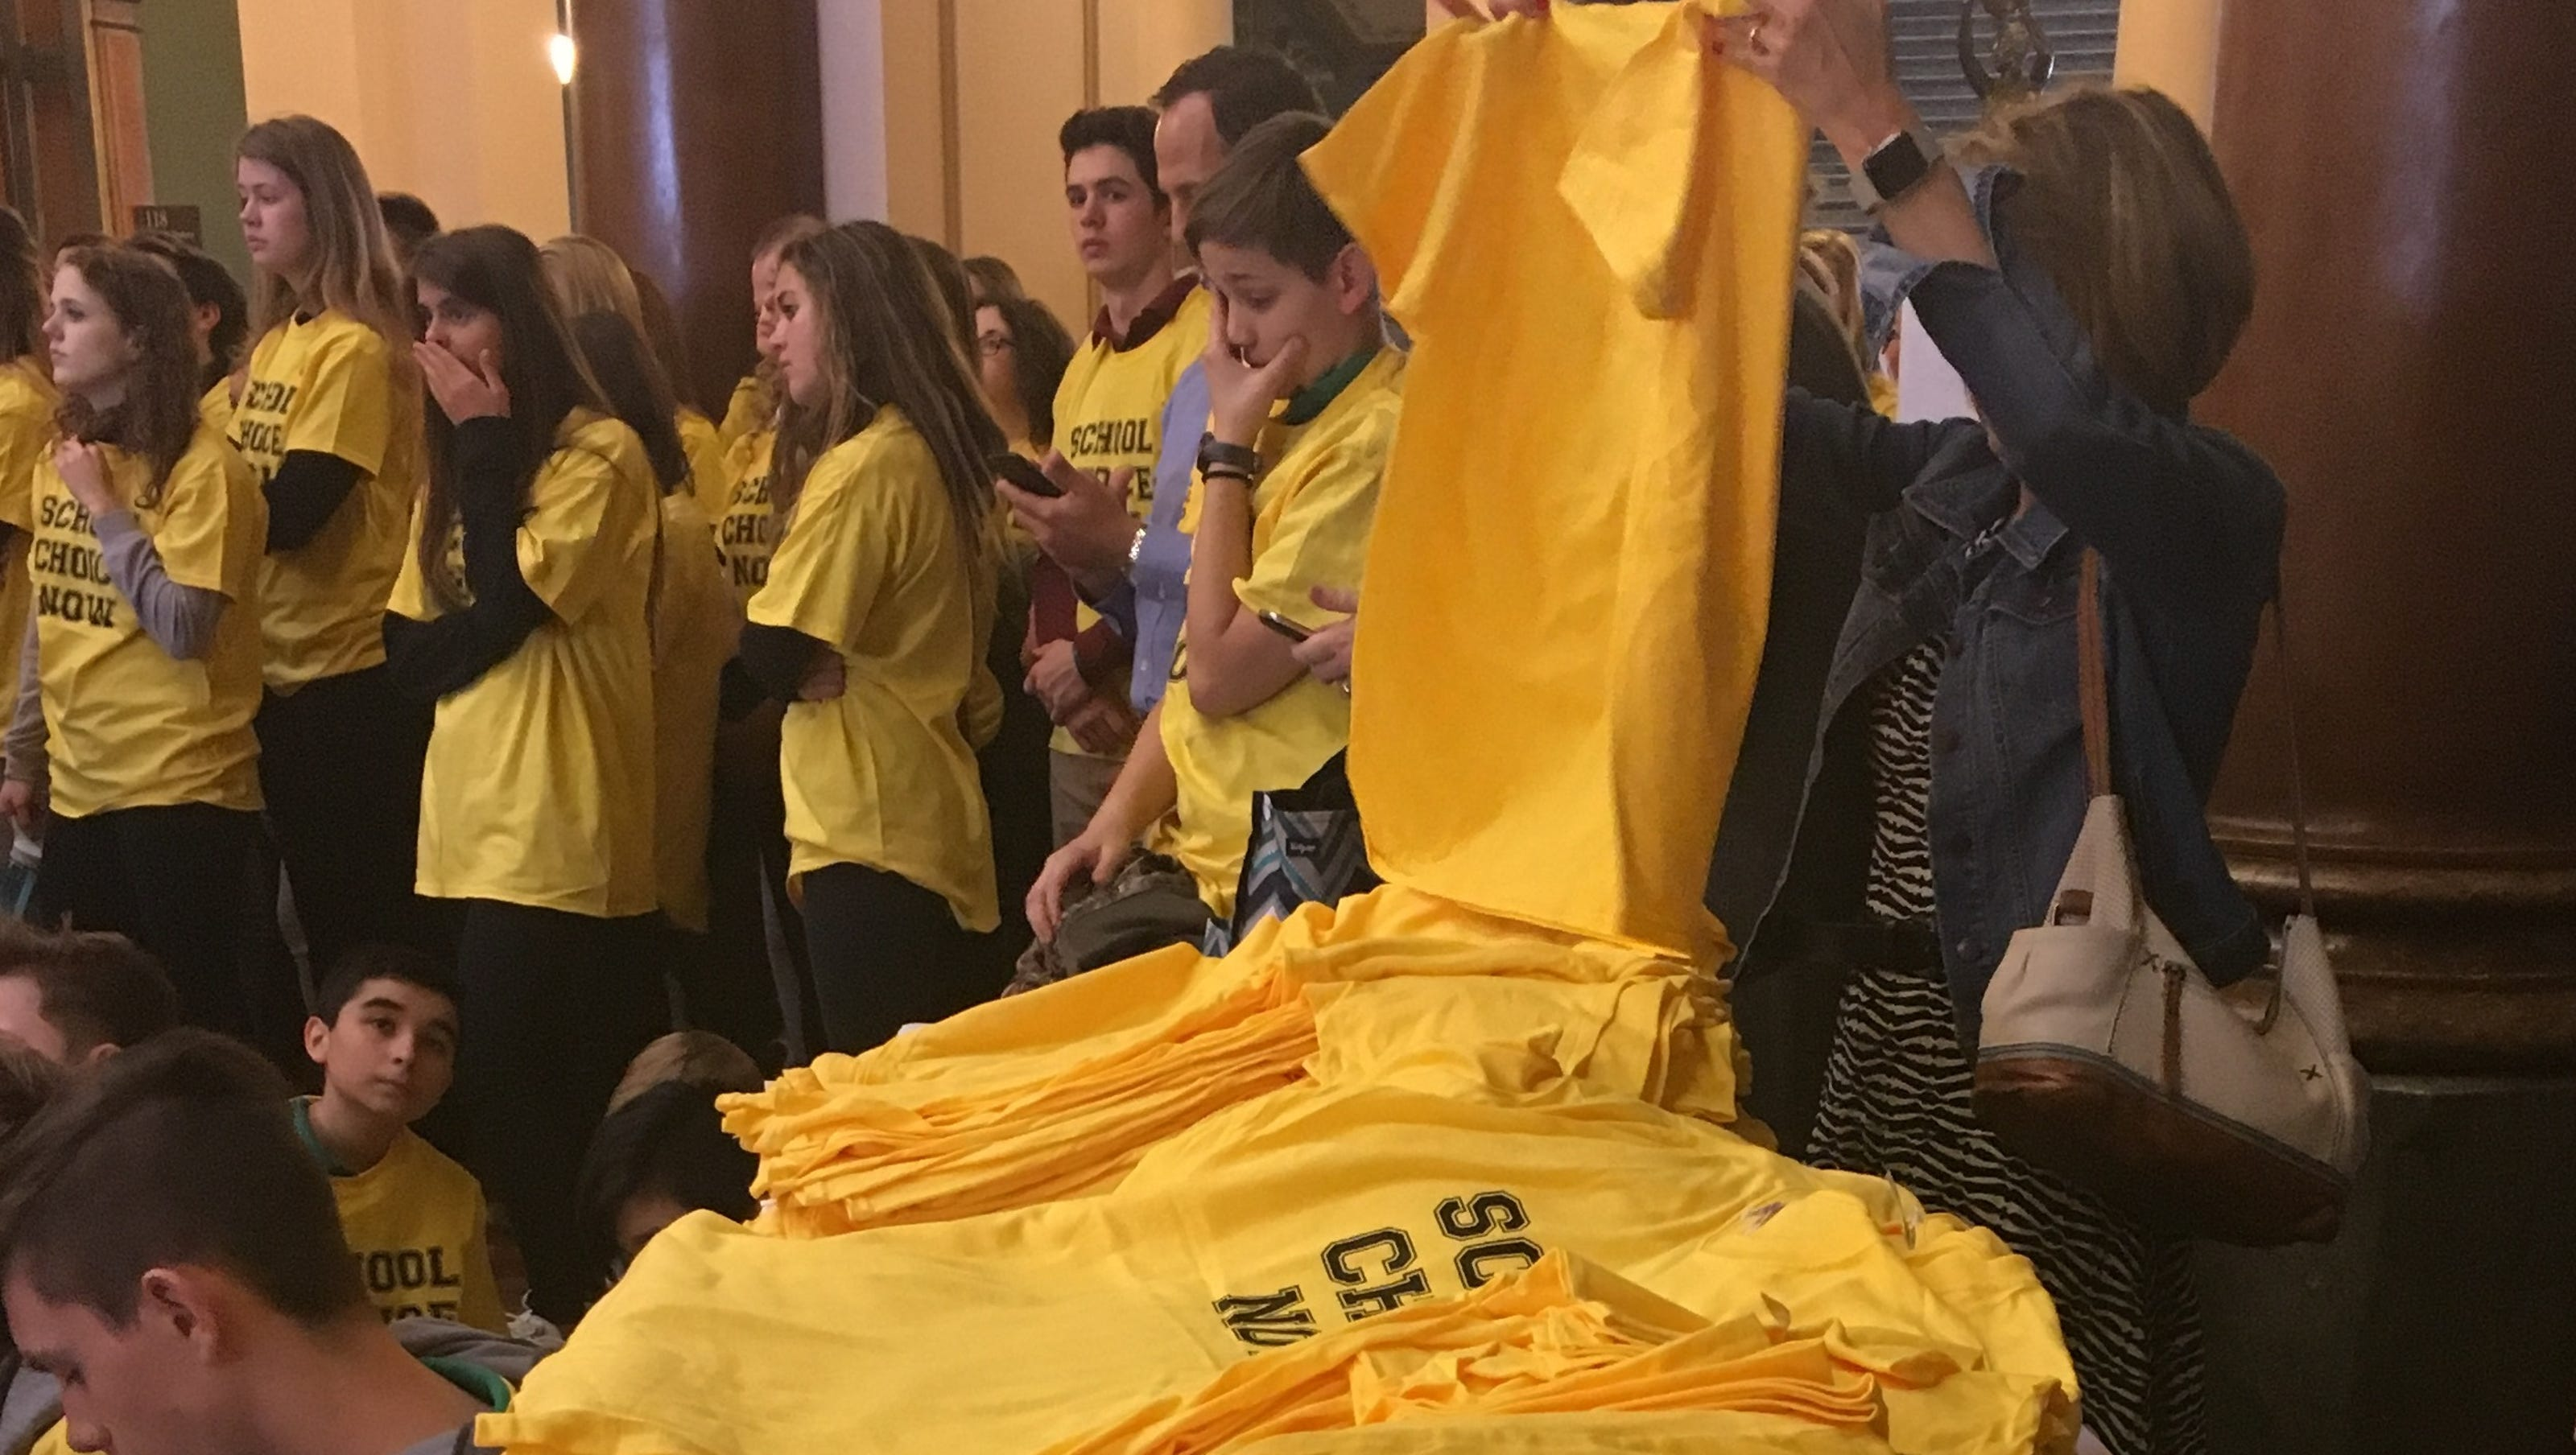 New bill opening transfers could re-segregate Iowa schools, opponents say